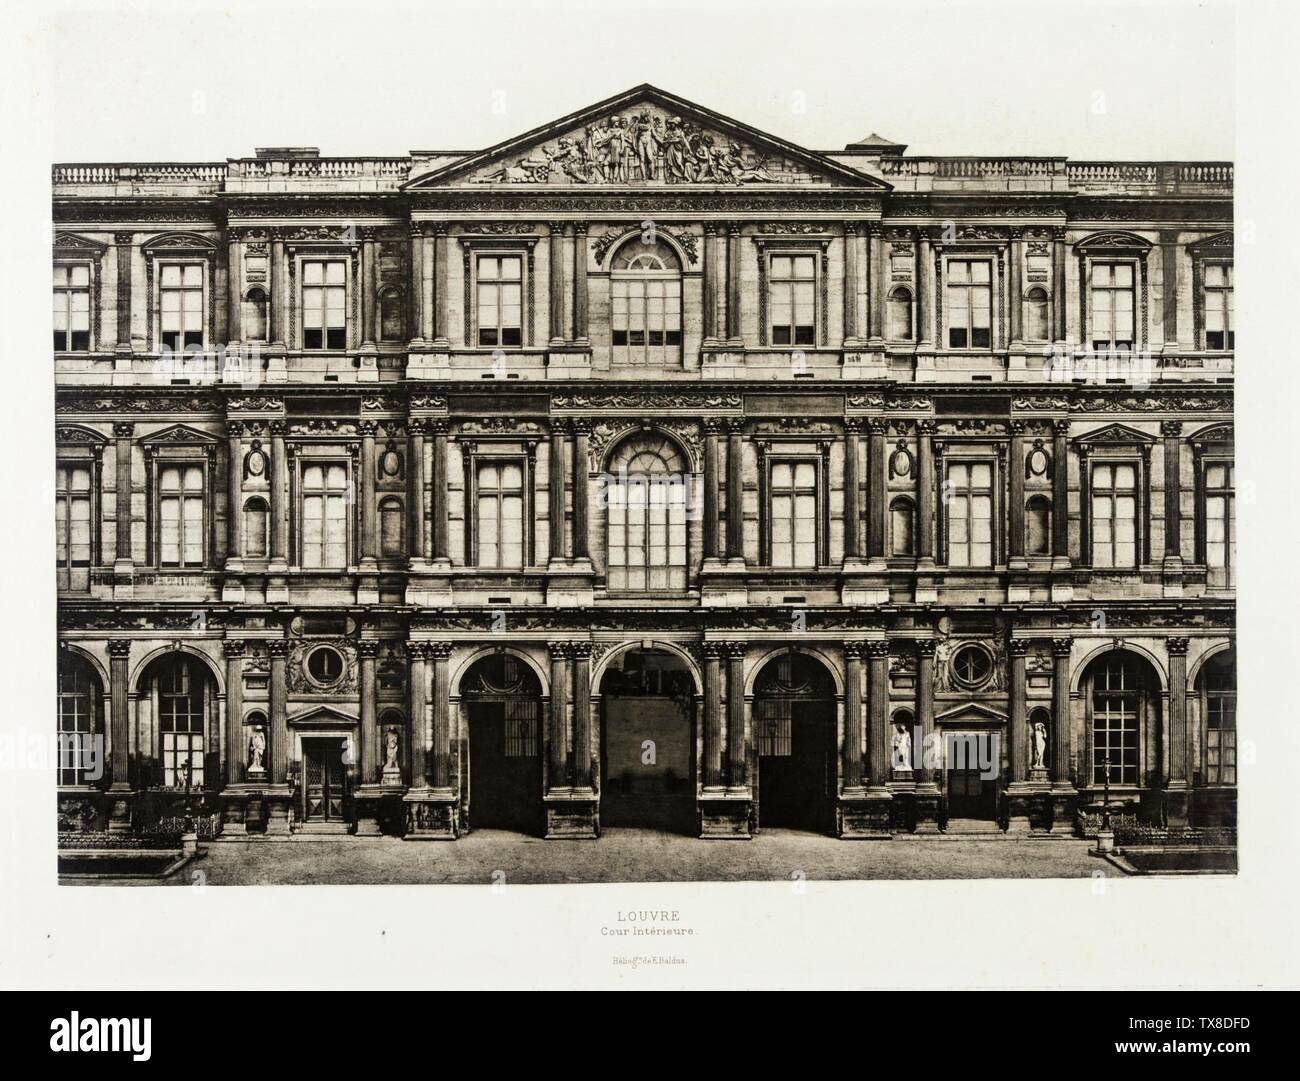 Louvre, cour intèrieure; South facade of the Pavillon de Marengo on the north side of the Cour Carrée of the Louvre in Paris France, circa 1856 Photographs Photogravure Image: 14 3/4 x 19 in. (37.47 x 48.26 cm); Sheet: 17 1/2 x 25 in. (44.45 x 63.5 cm) Anonymous gift (AC1998.239.1) Photography; circa 1856 date QS:P571,+1856-00-00T00:00:00Z/9,P1480,Q5727902; Stock Photo